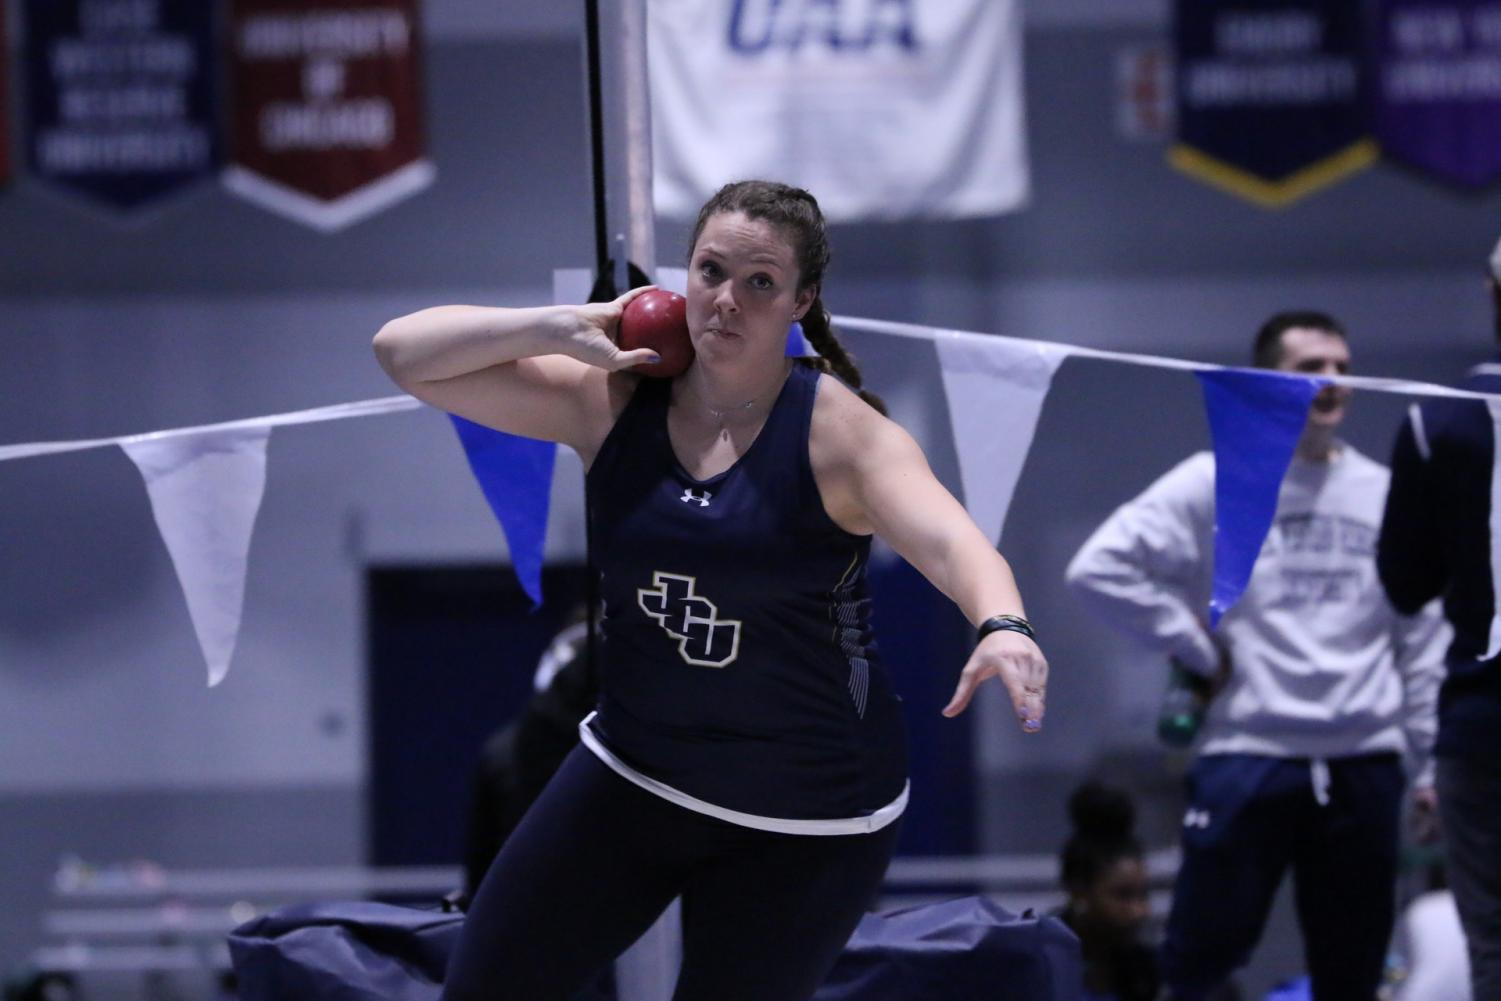 Sophomore Olivia Hurtt holds the shot put in a competition at Case Western on Saturday, Dec. 7.